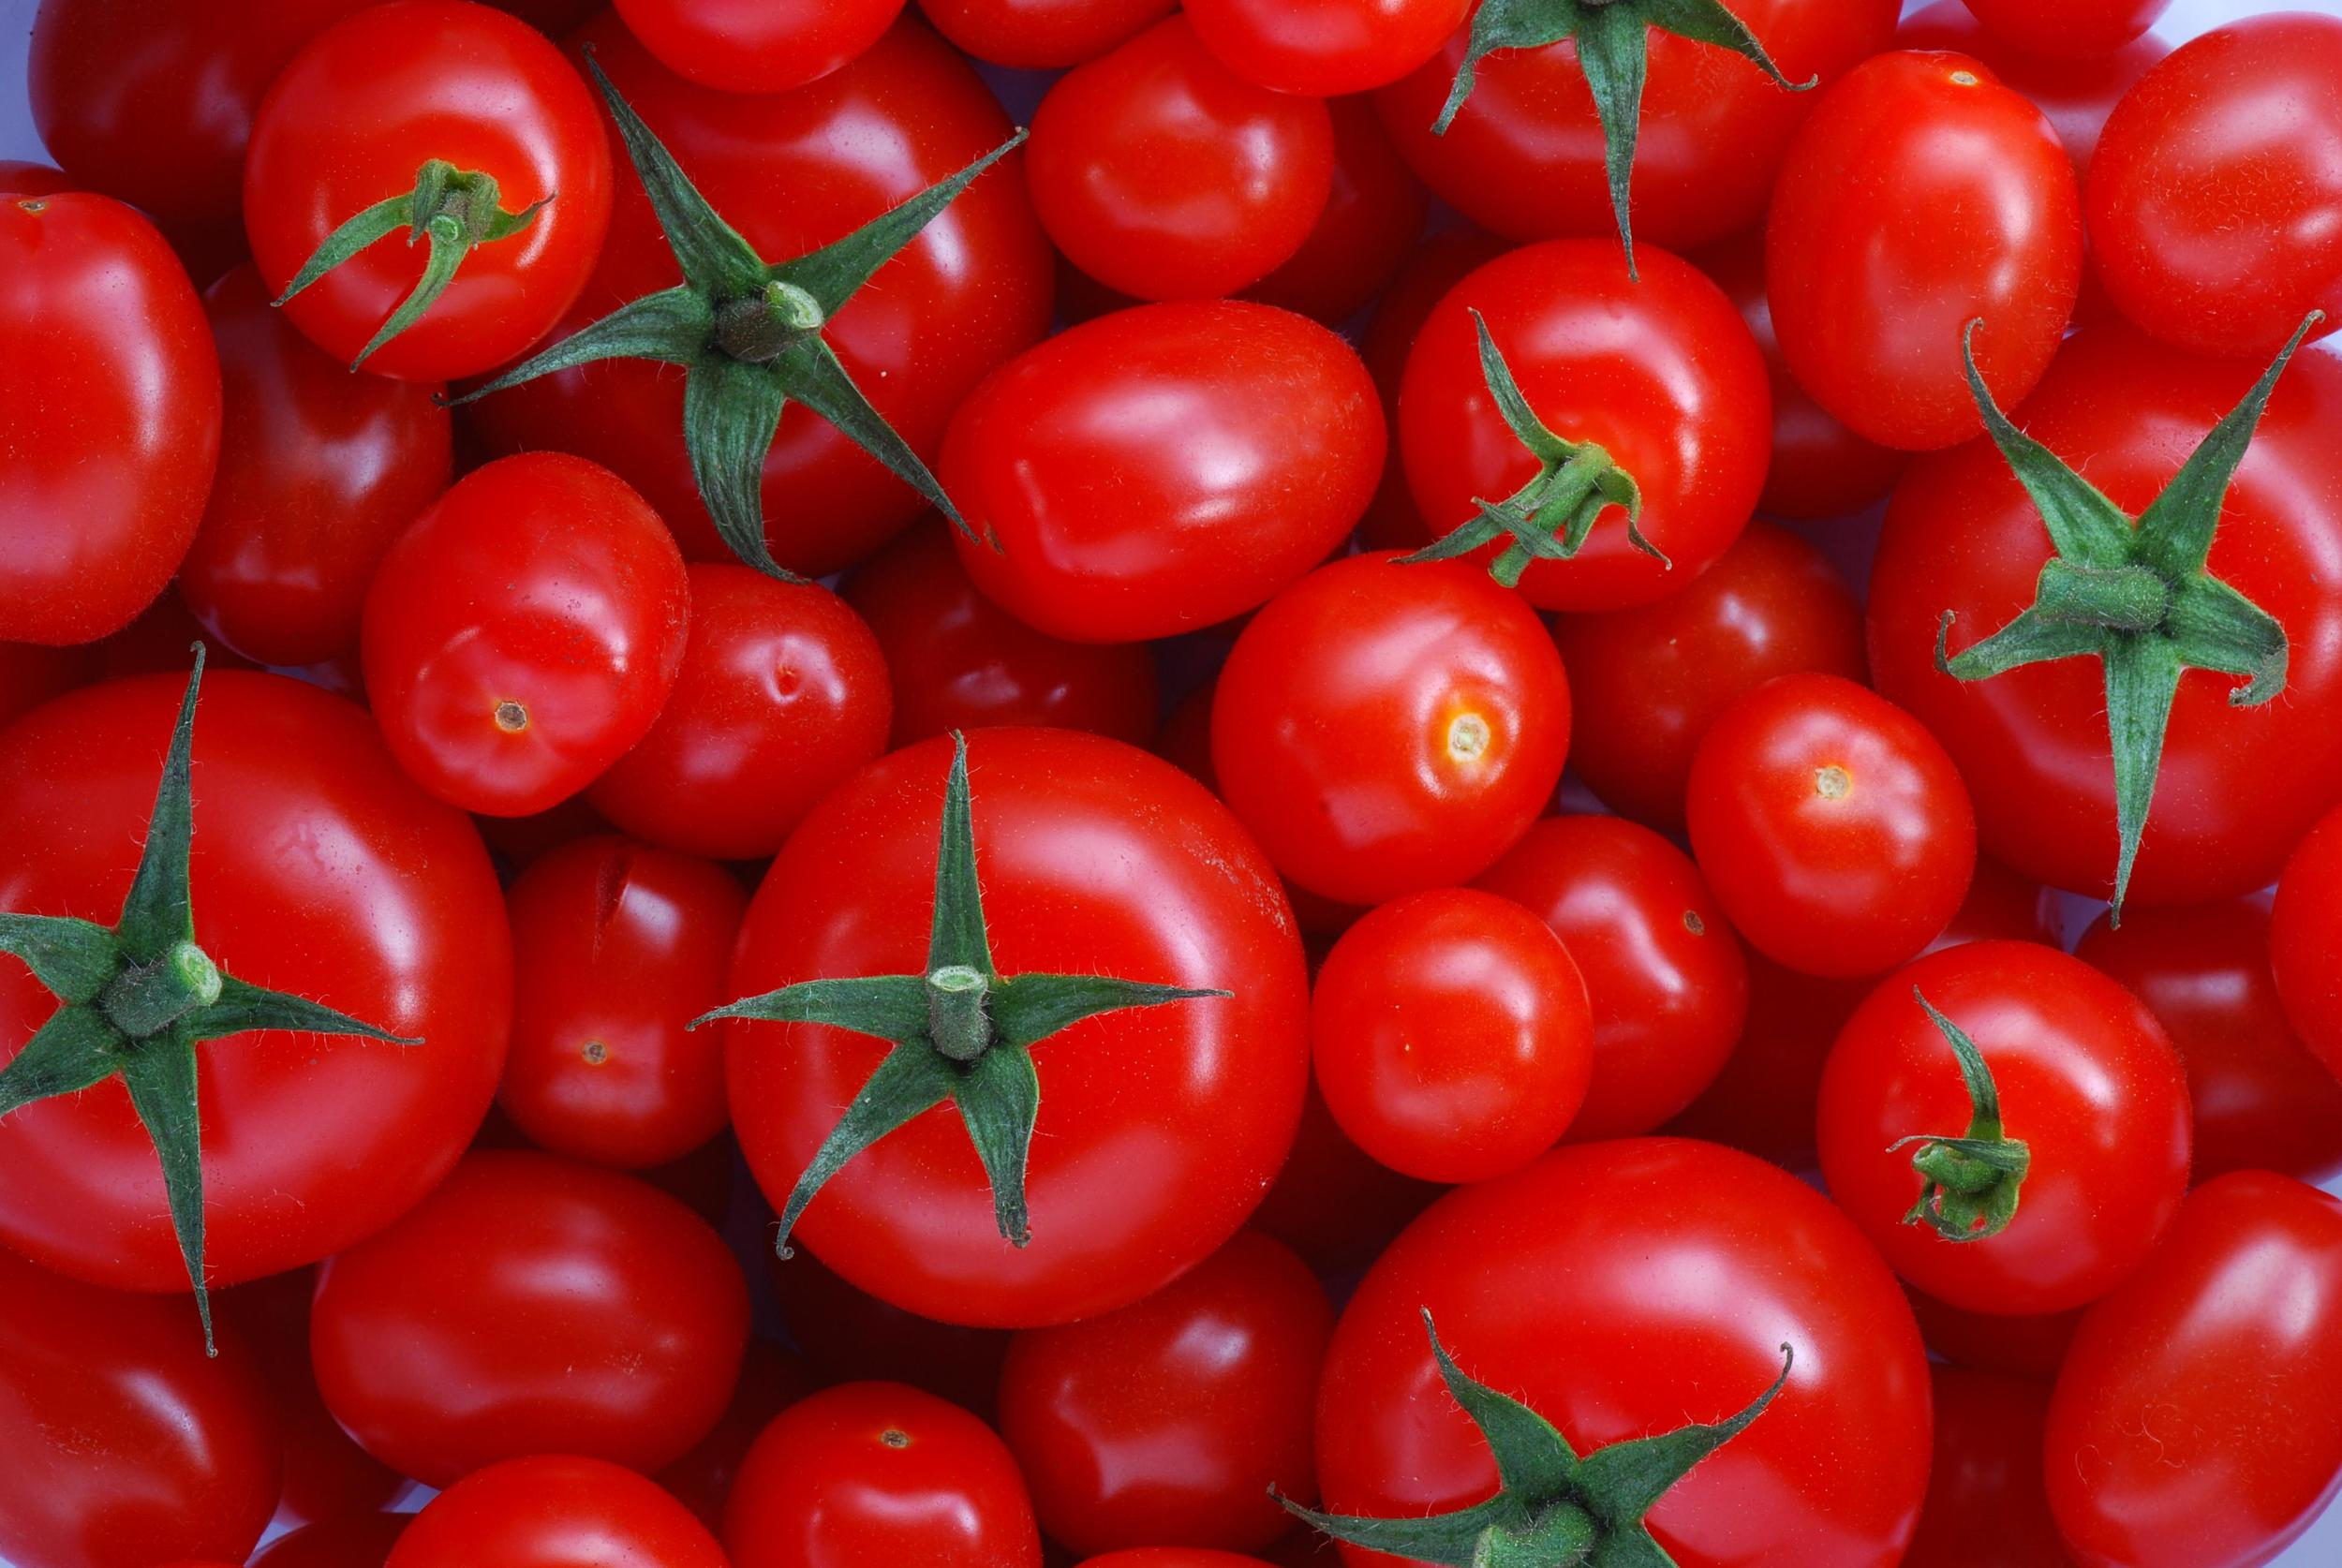 Many foods including broccoli and tomatoes help prostate health.